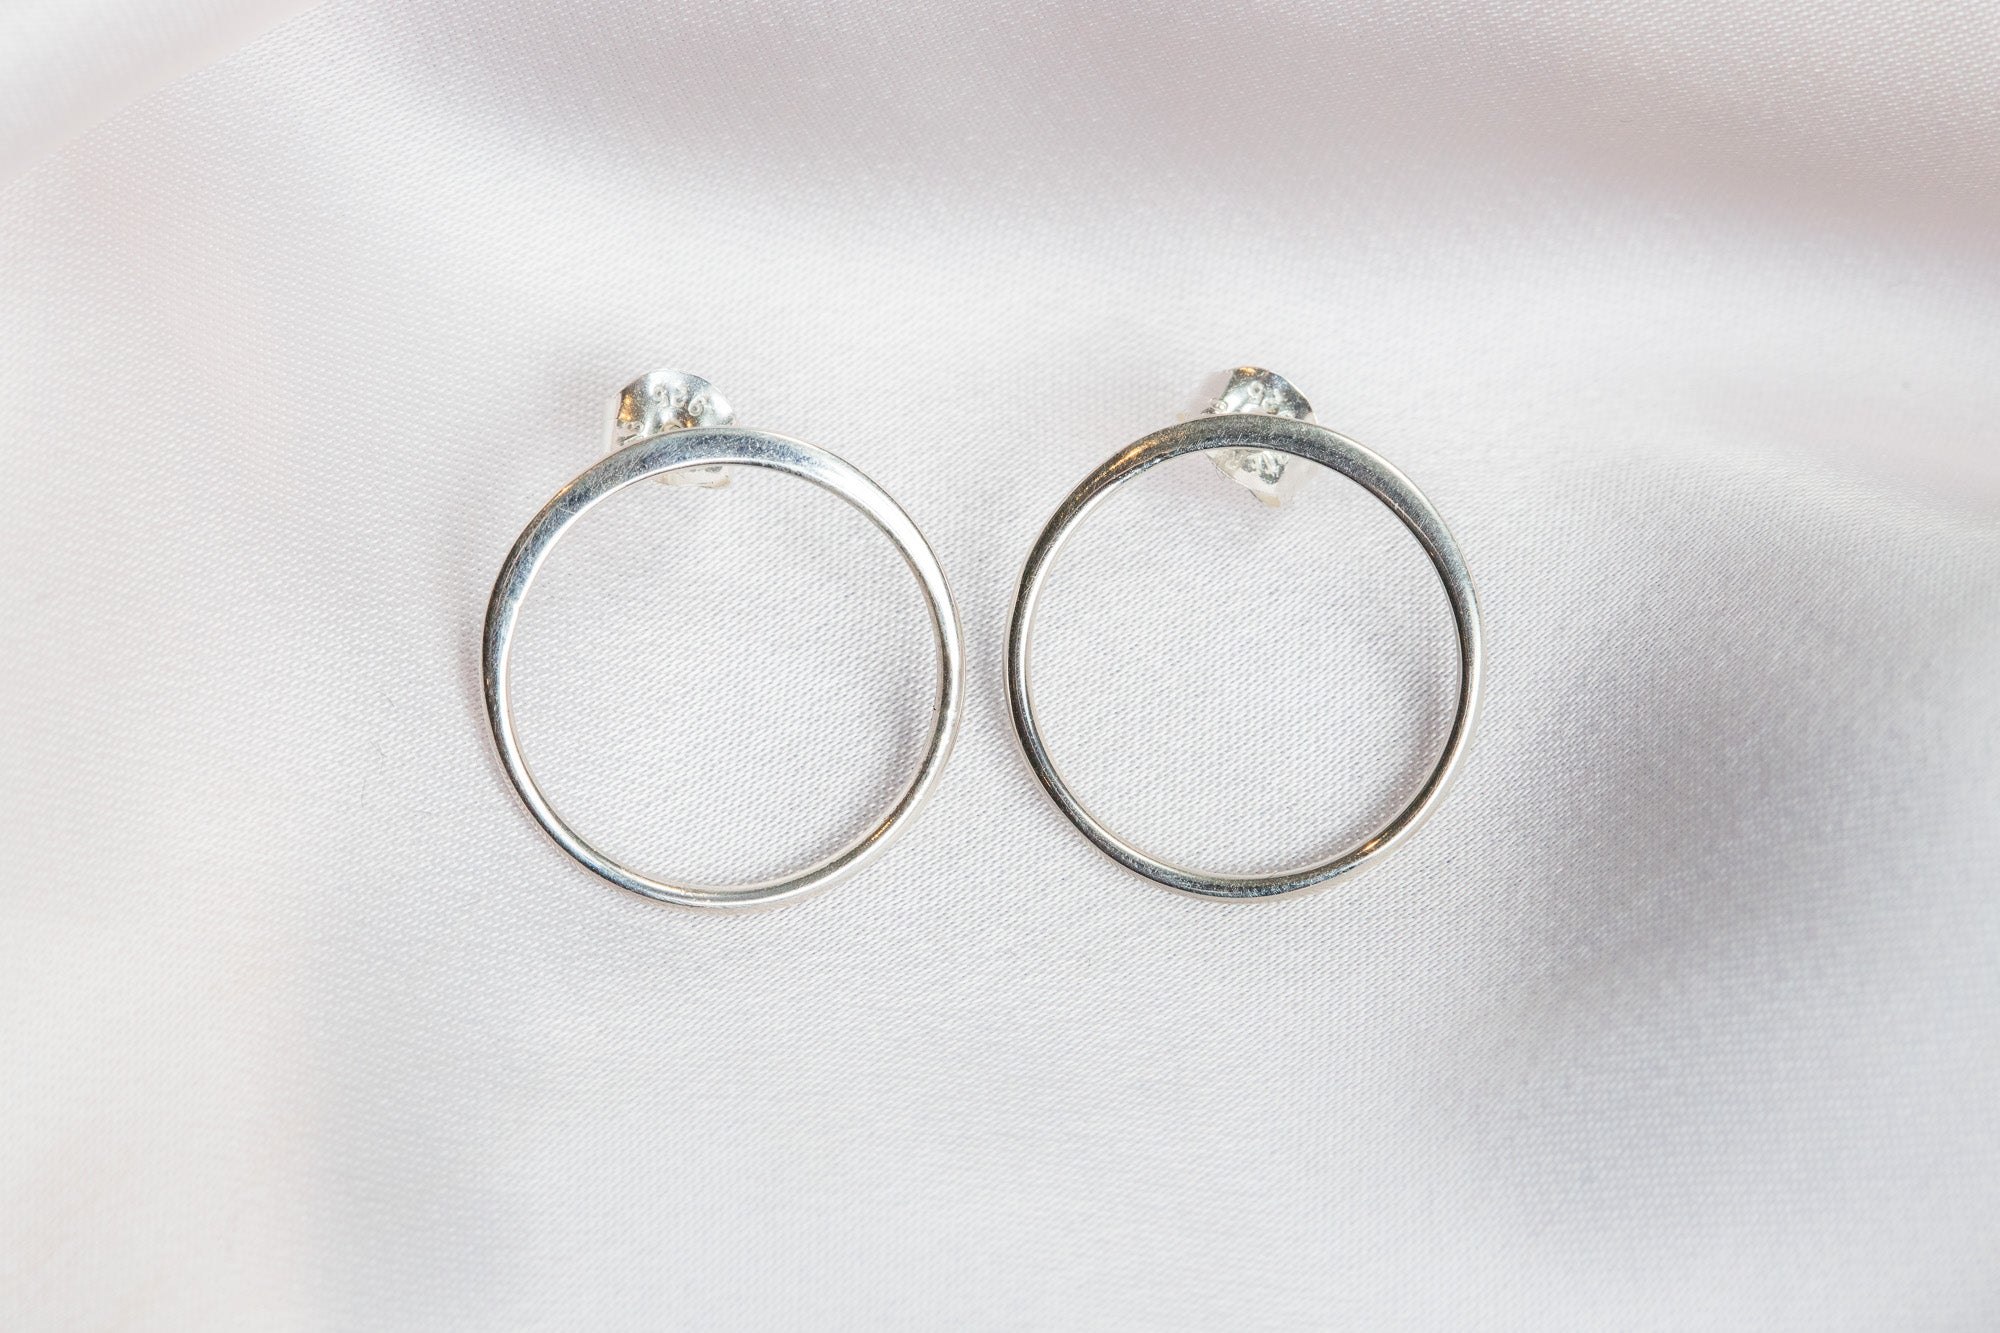 Carolily Finery hoop earrings made of Sterling silver from an ethical source in Thailand